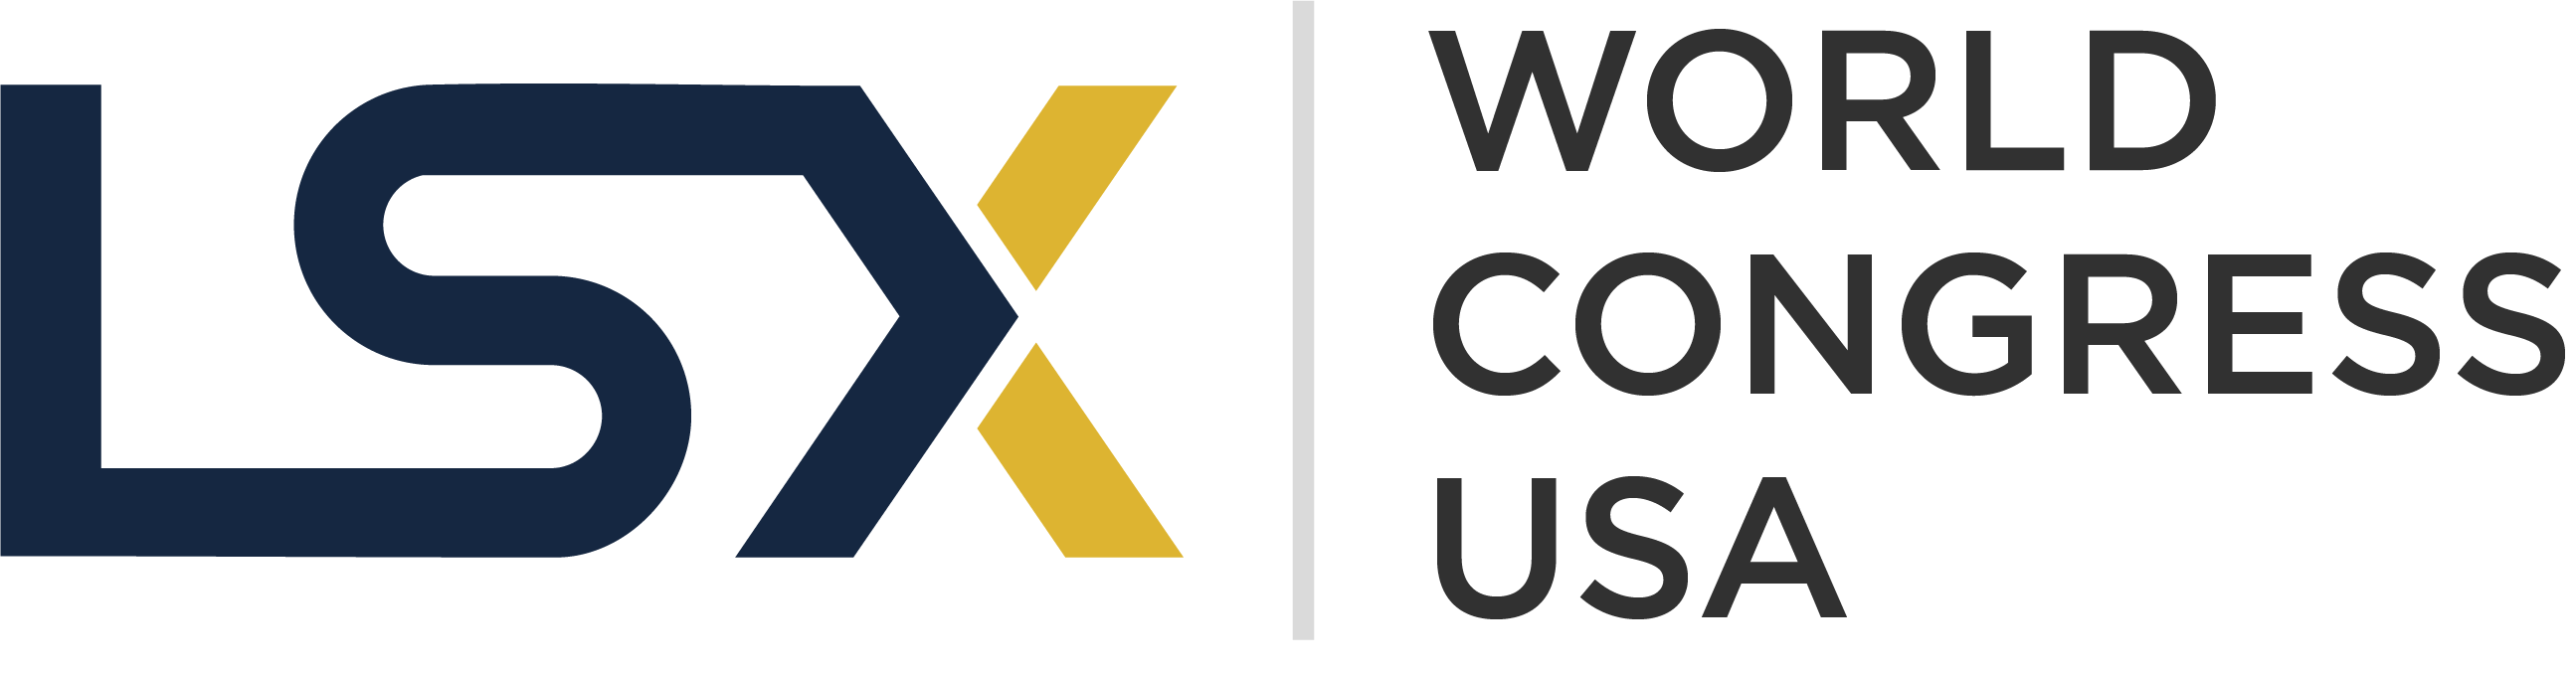 LSX World Congress USA-1.png